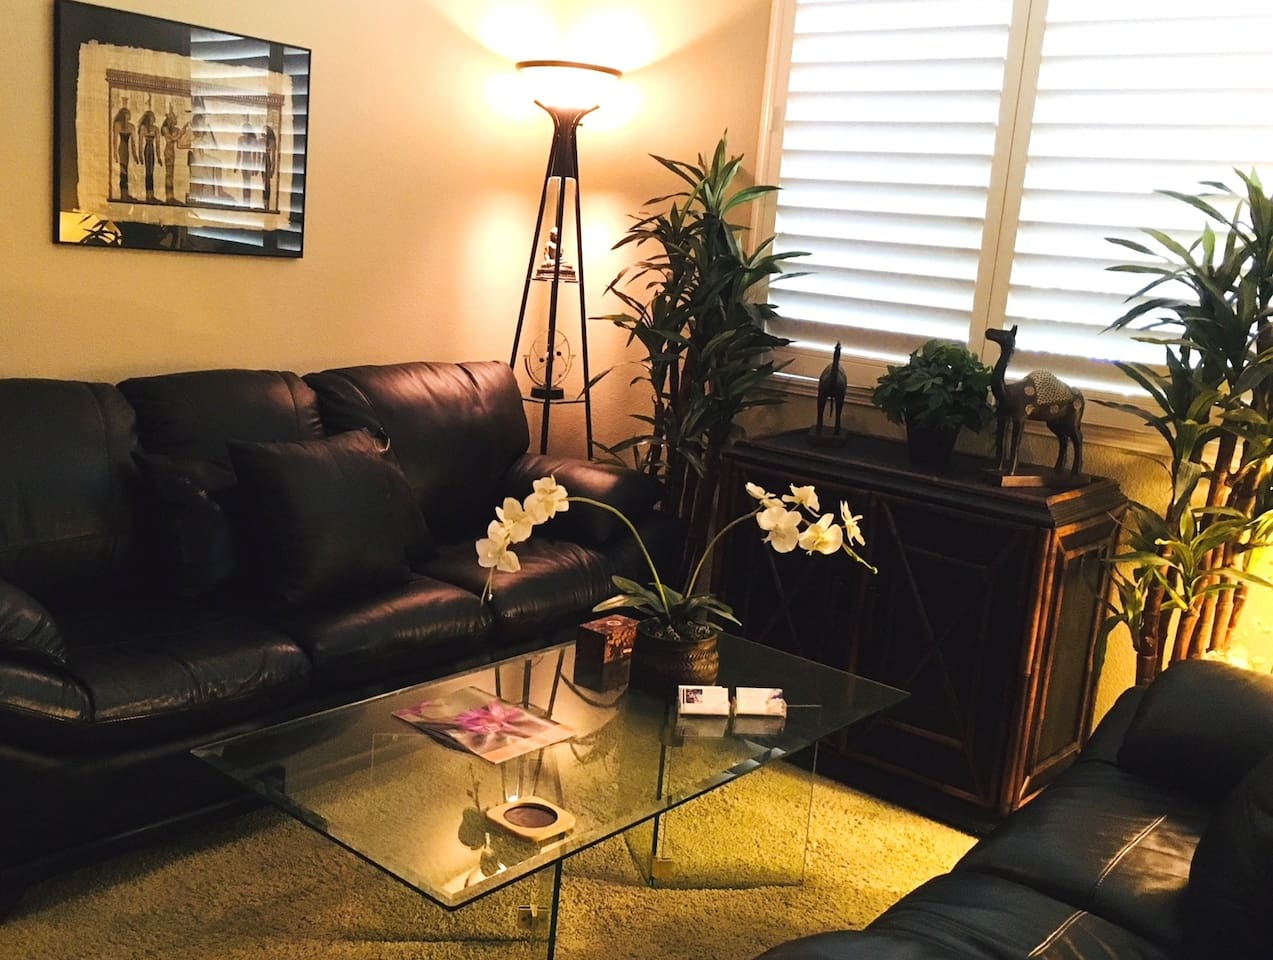 Entry Parlor Room - Feng Shui Design w/leather couch & love seat, silk plants, glass coffee table